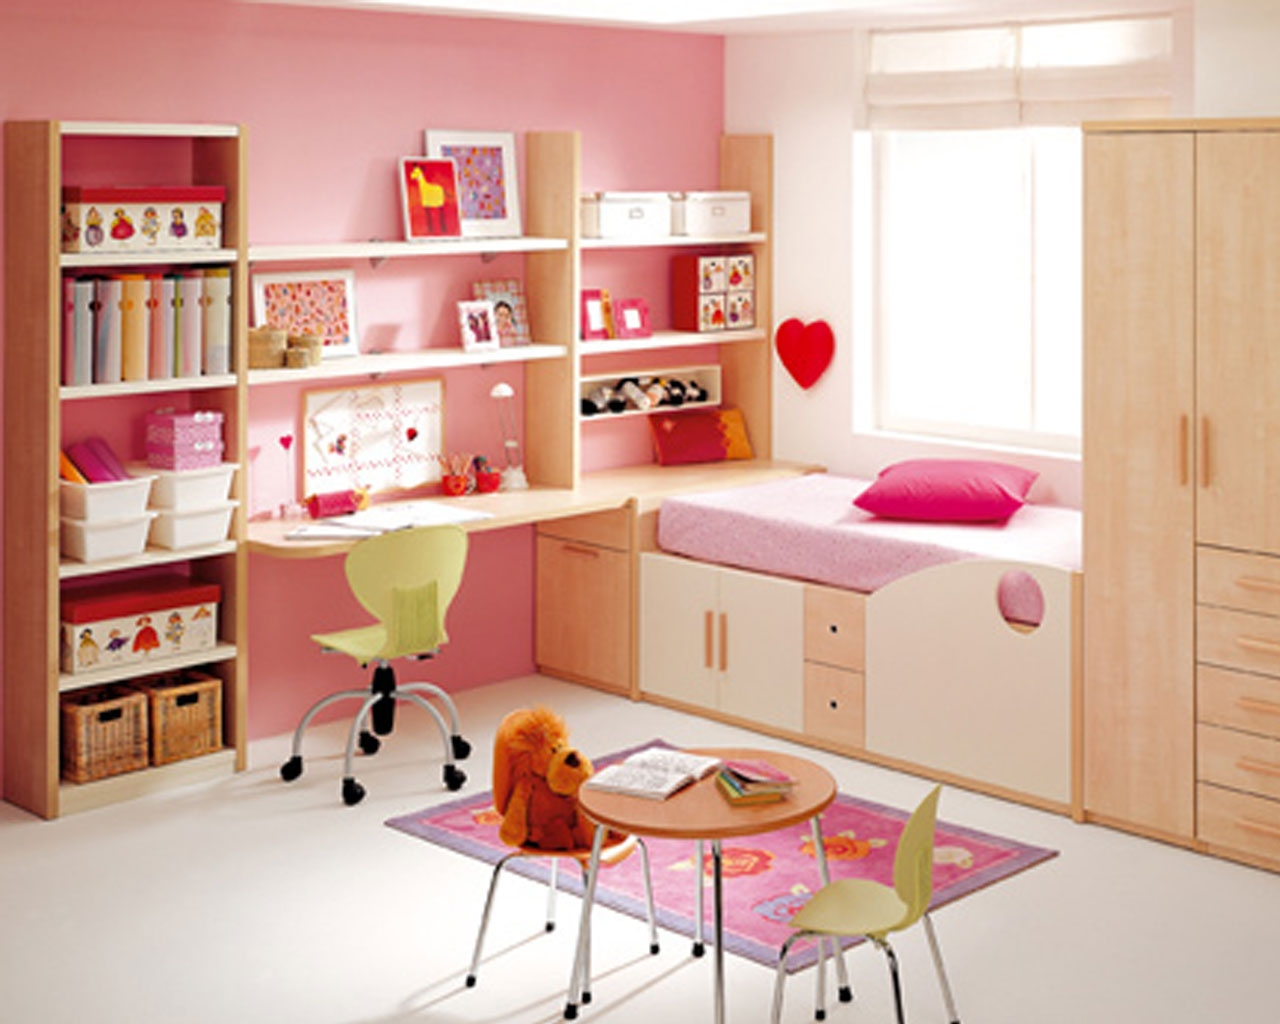 Pink Playful Paint Colors For Small Bedrooms (View 6 of 10)